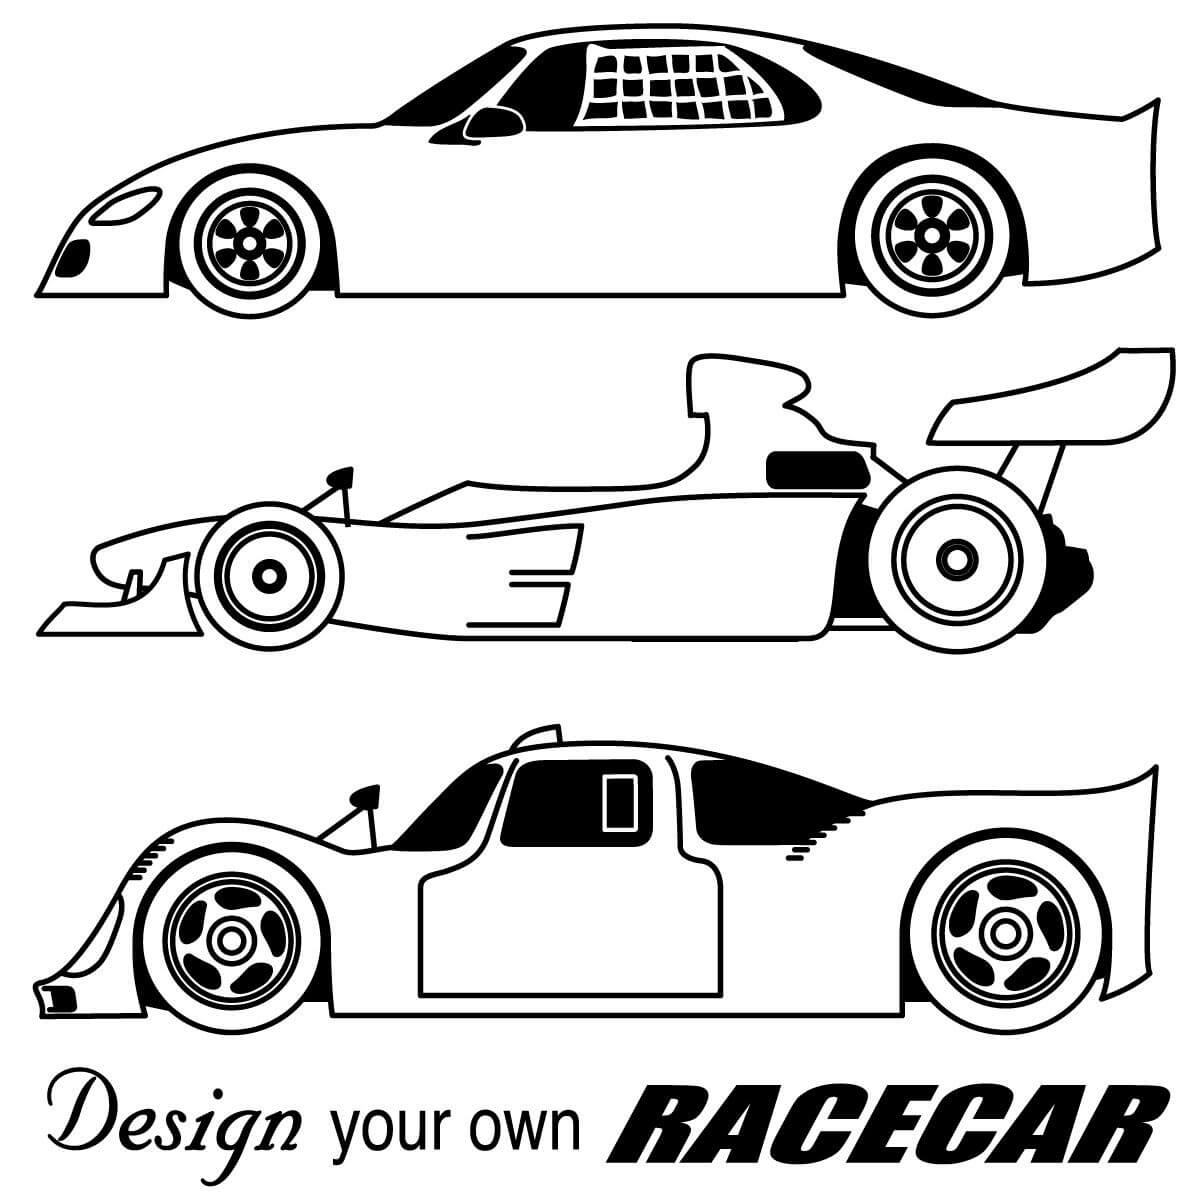 Blank Race Car Coloring Pages Pertaining To Blank Race Car Templates